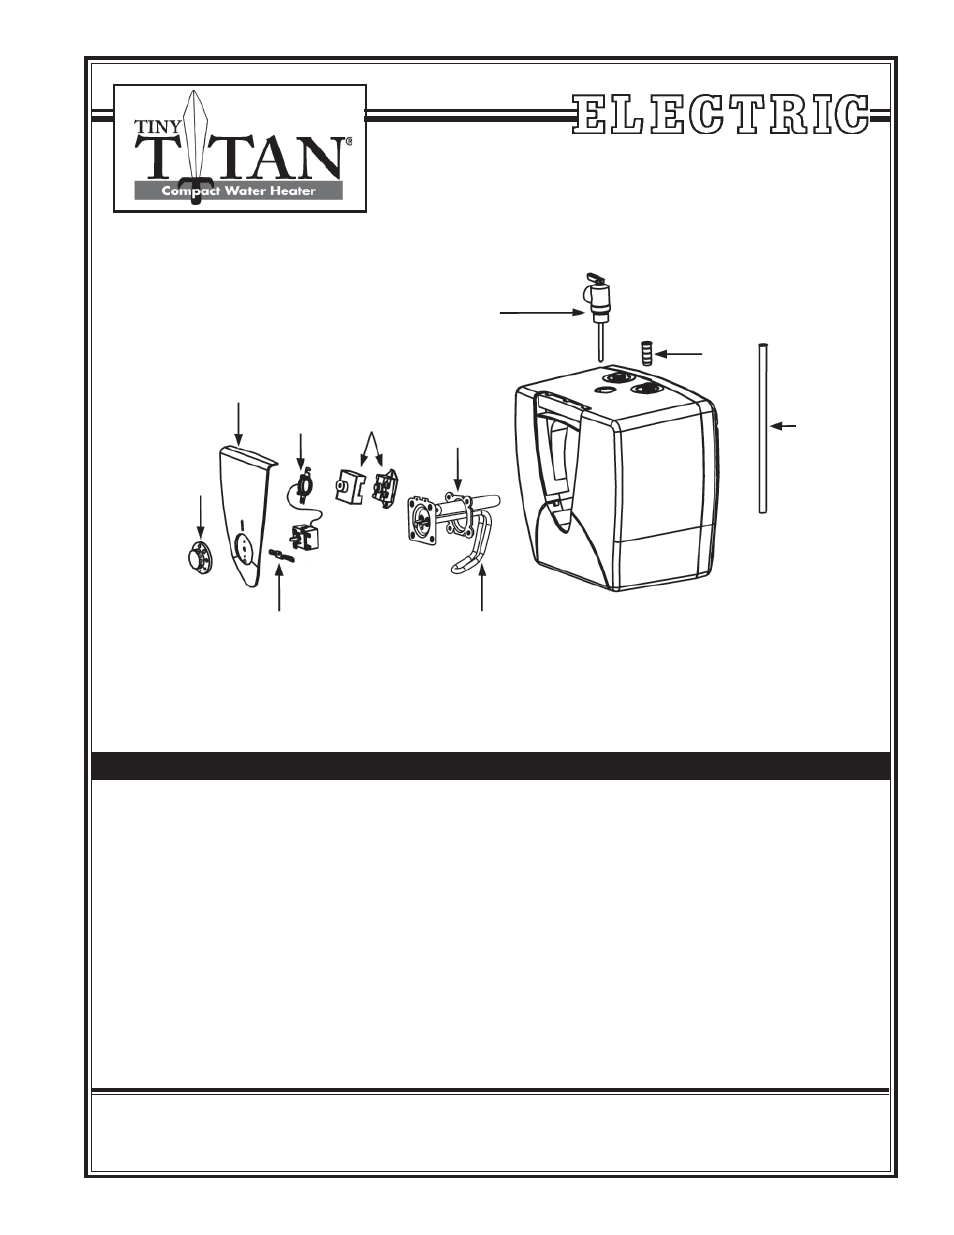 American water heater tiny titan e25 user manual 1 page ccuart Images